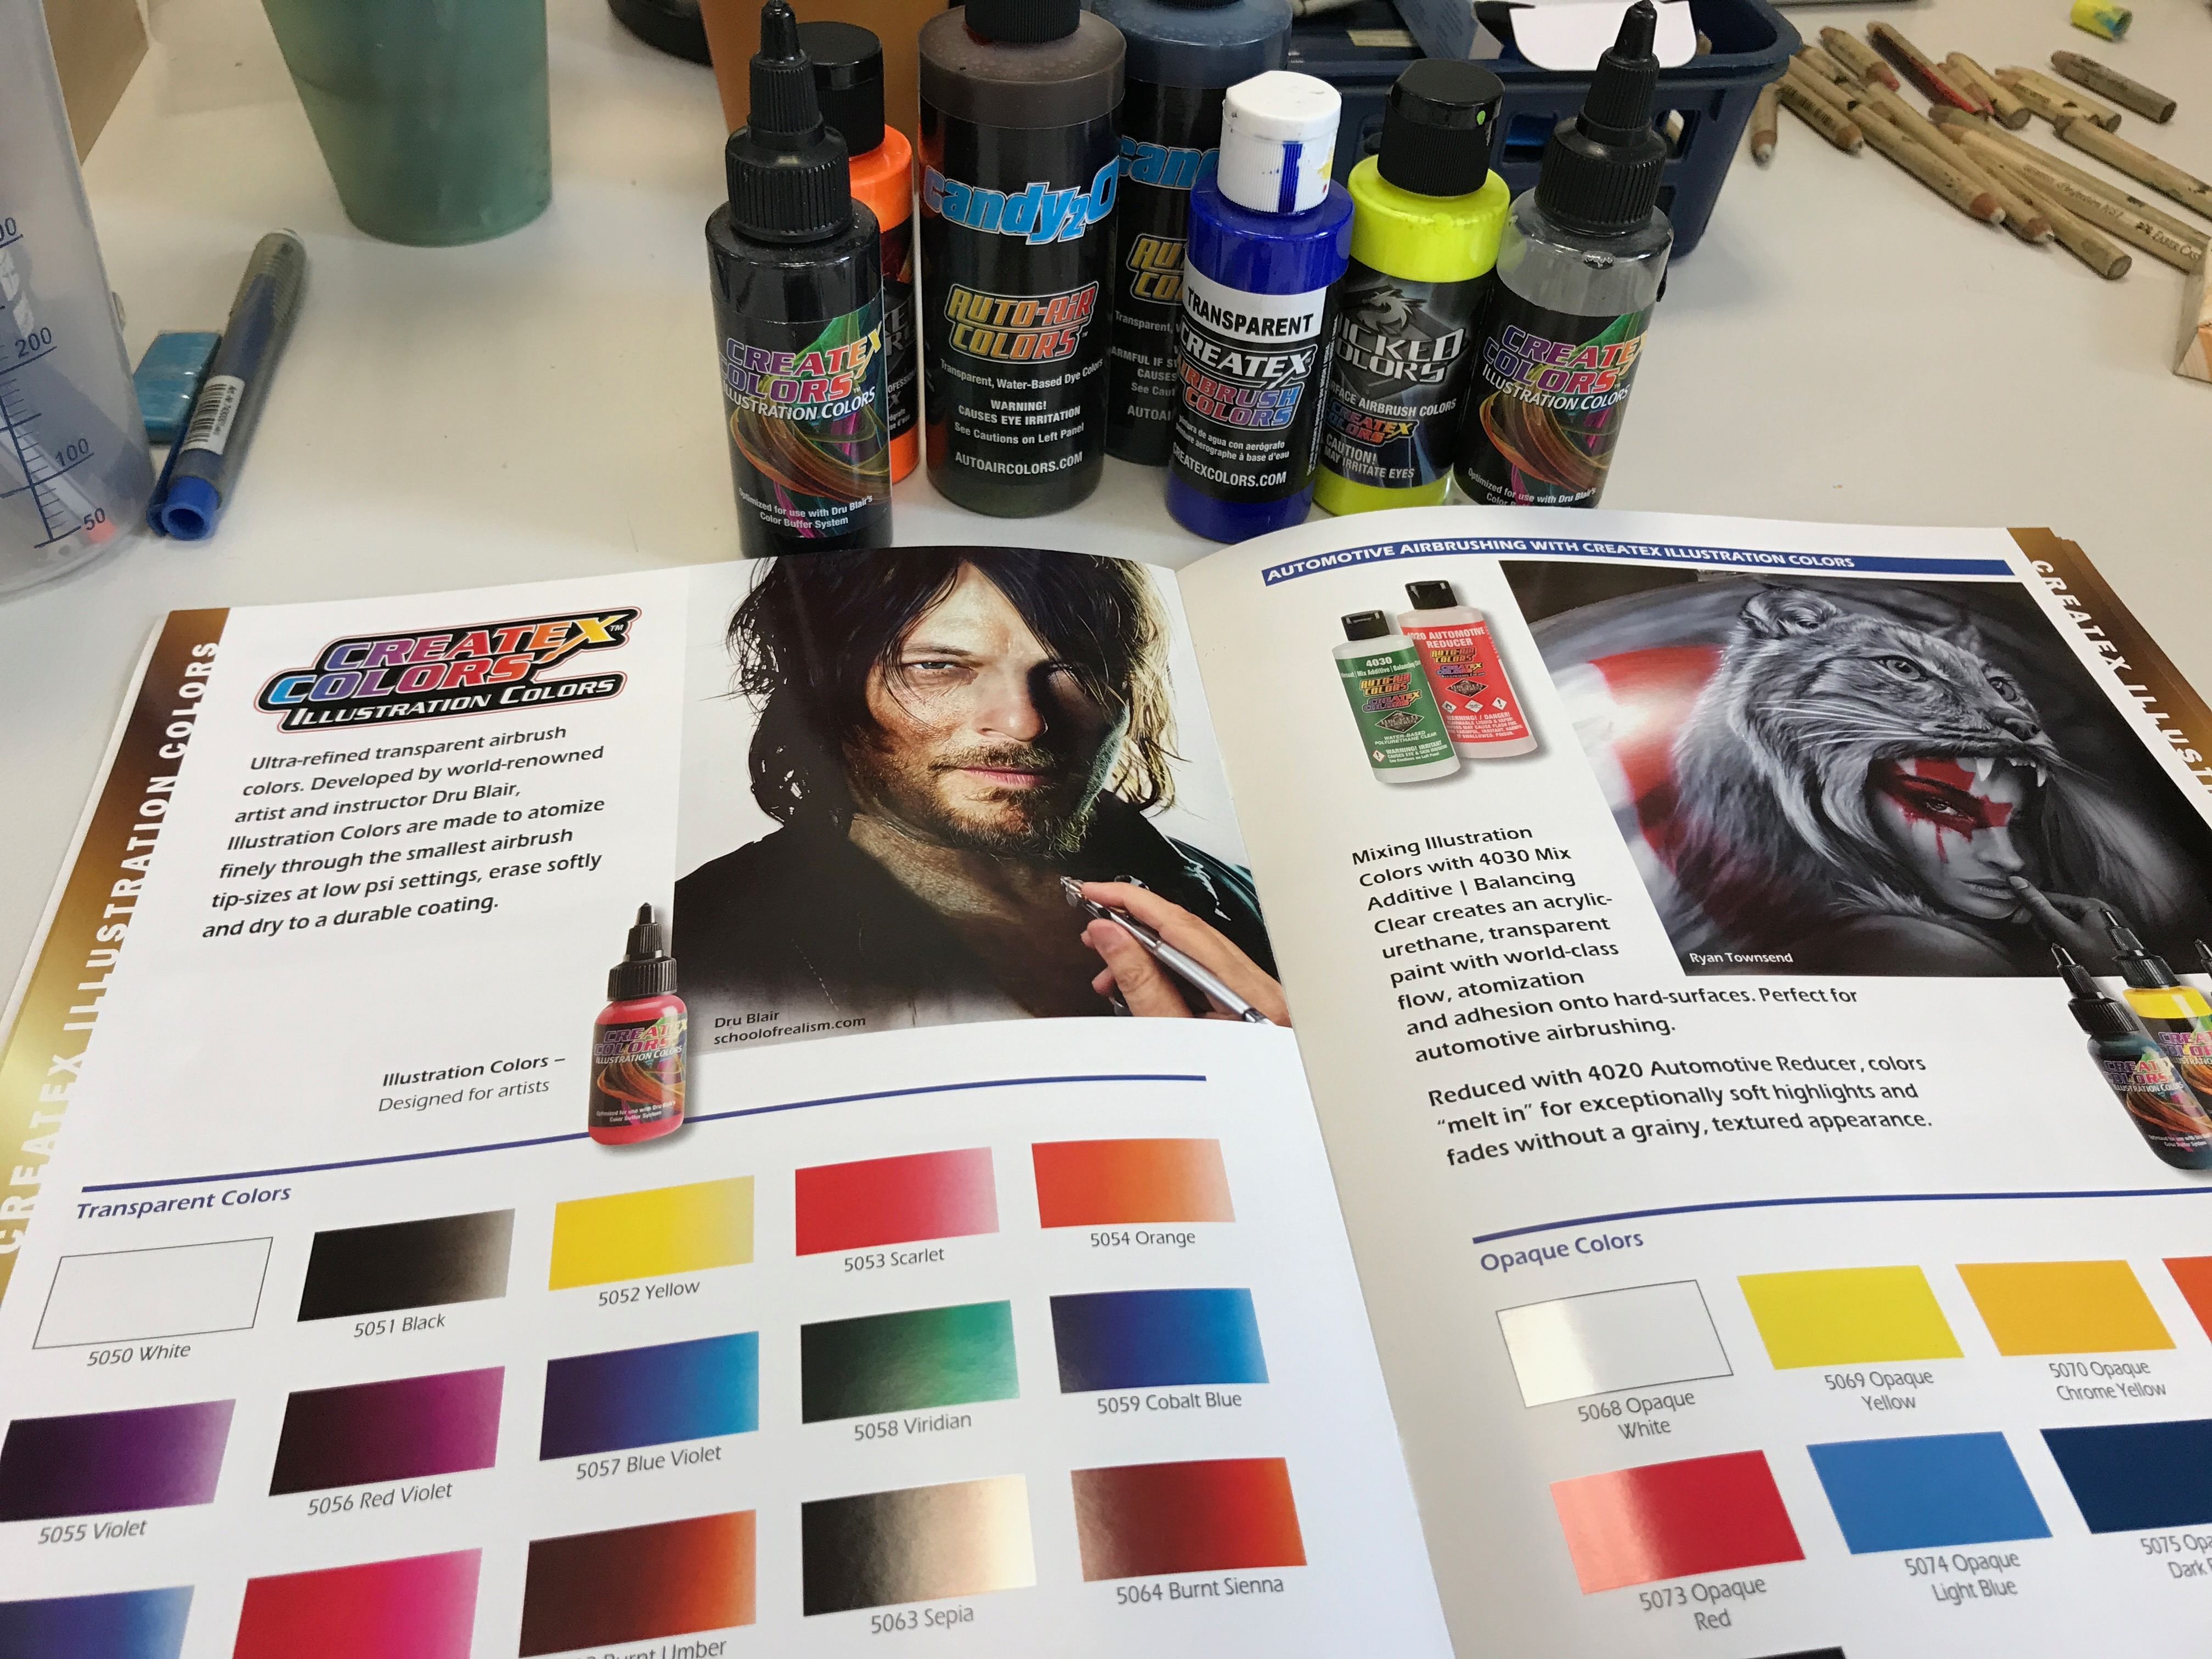 More than just advertisement: New Color Catalog from Createx